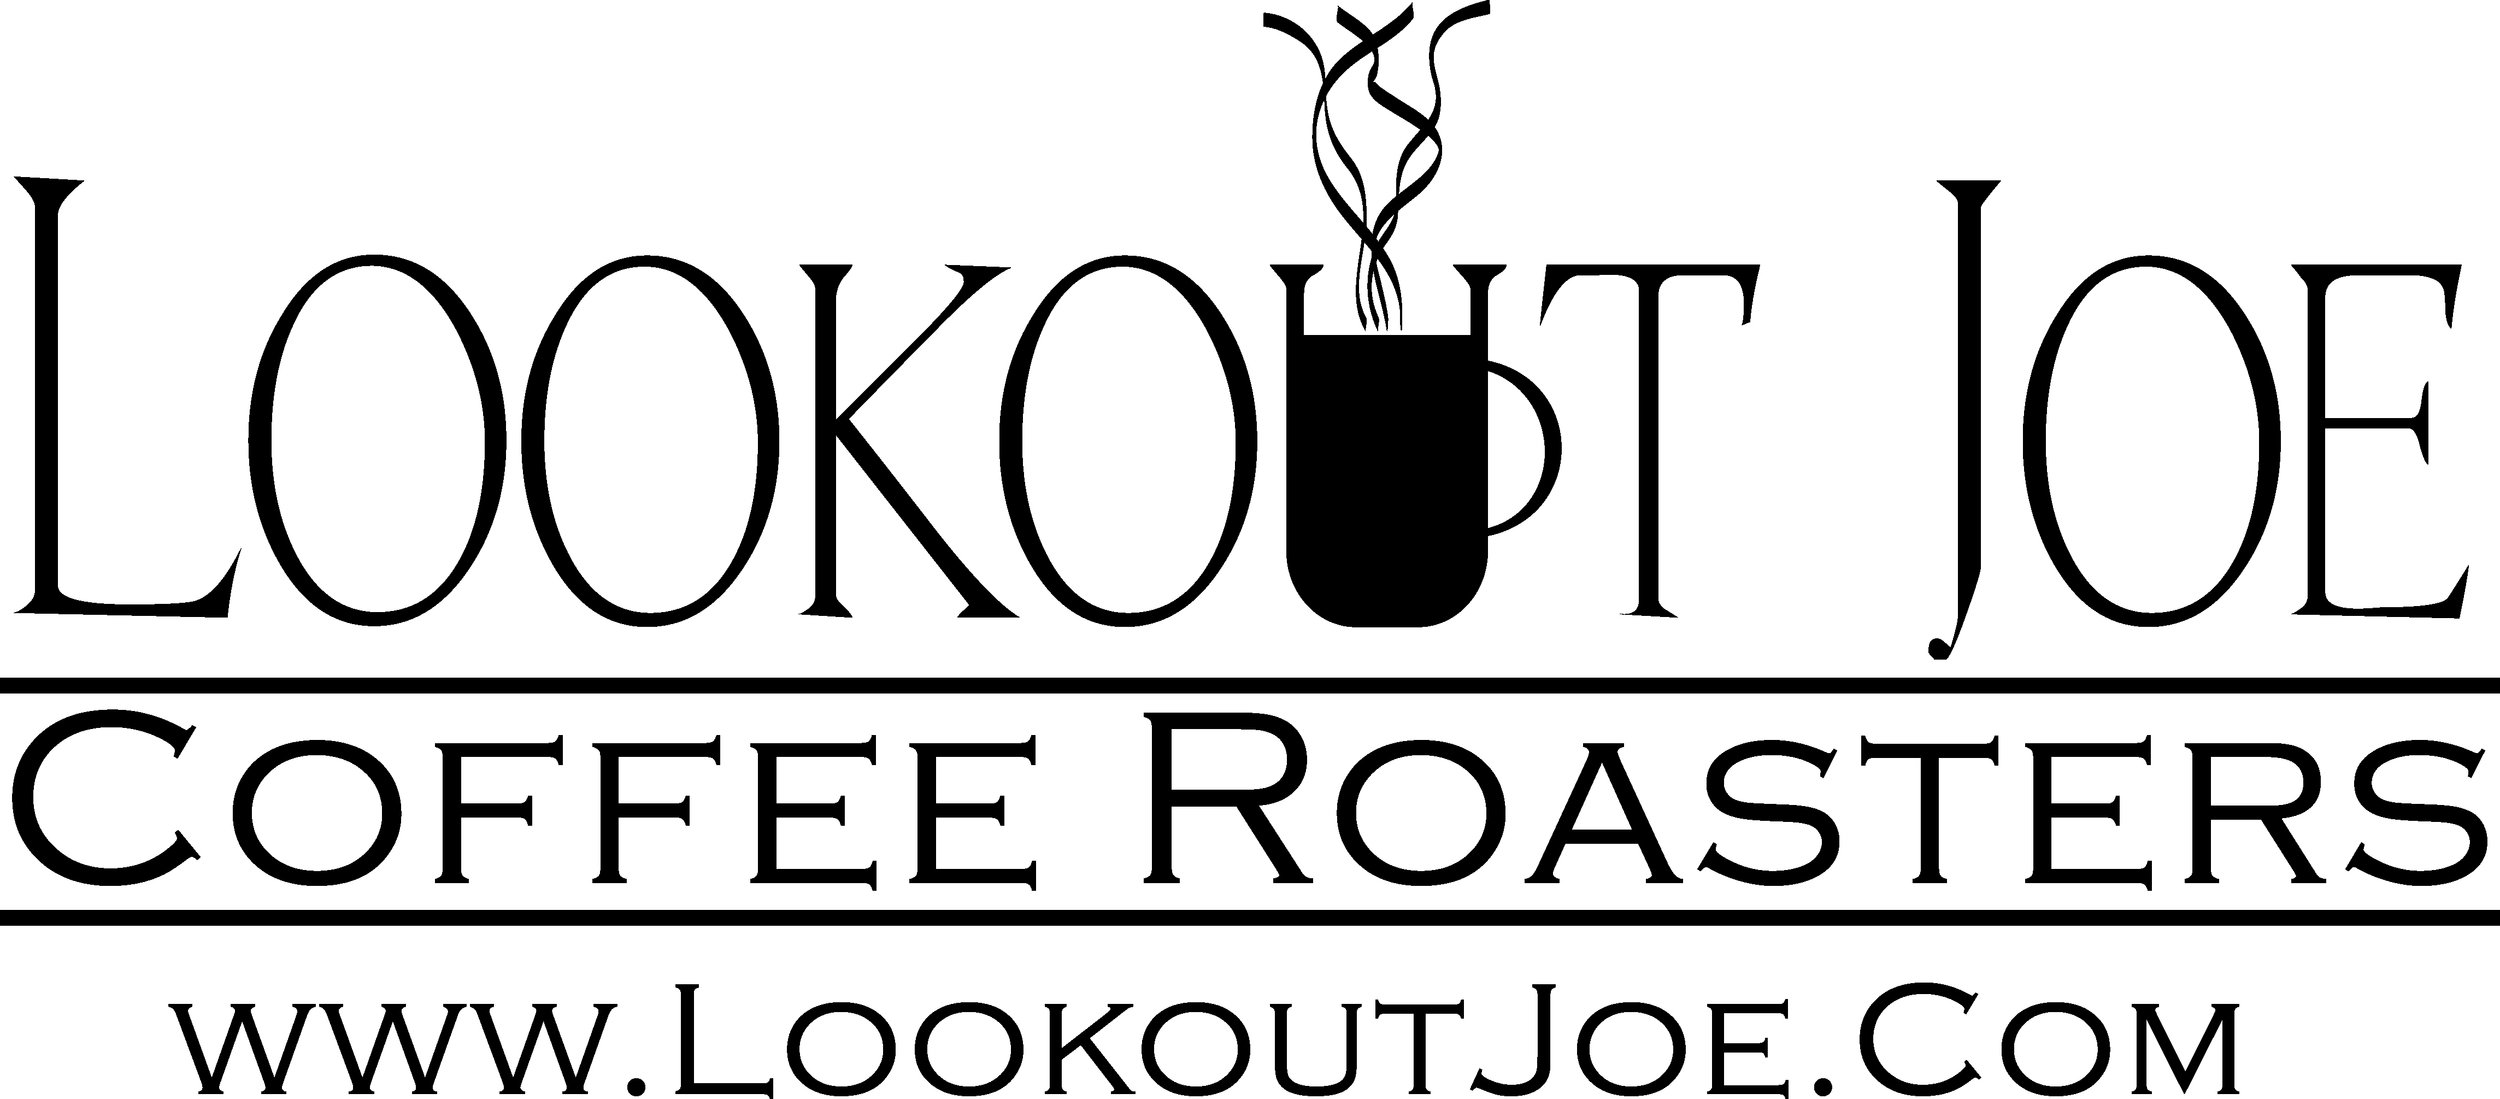 Lookout Joe logo- Revised - No Tag Line.jpg